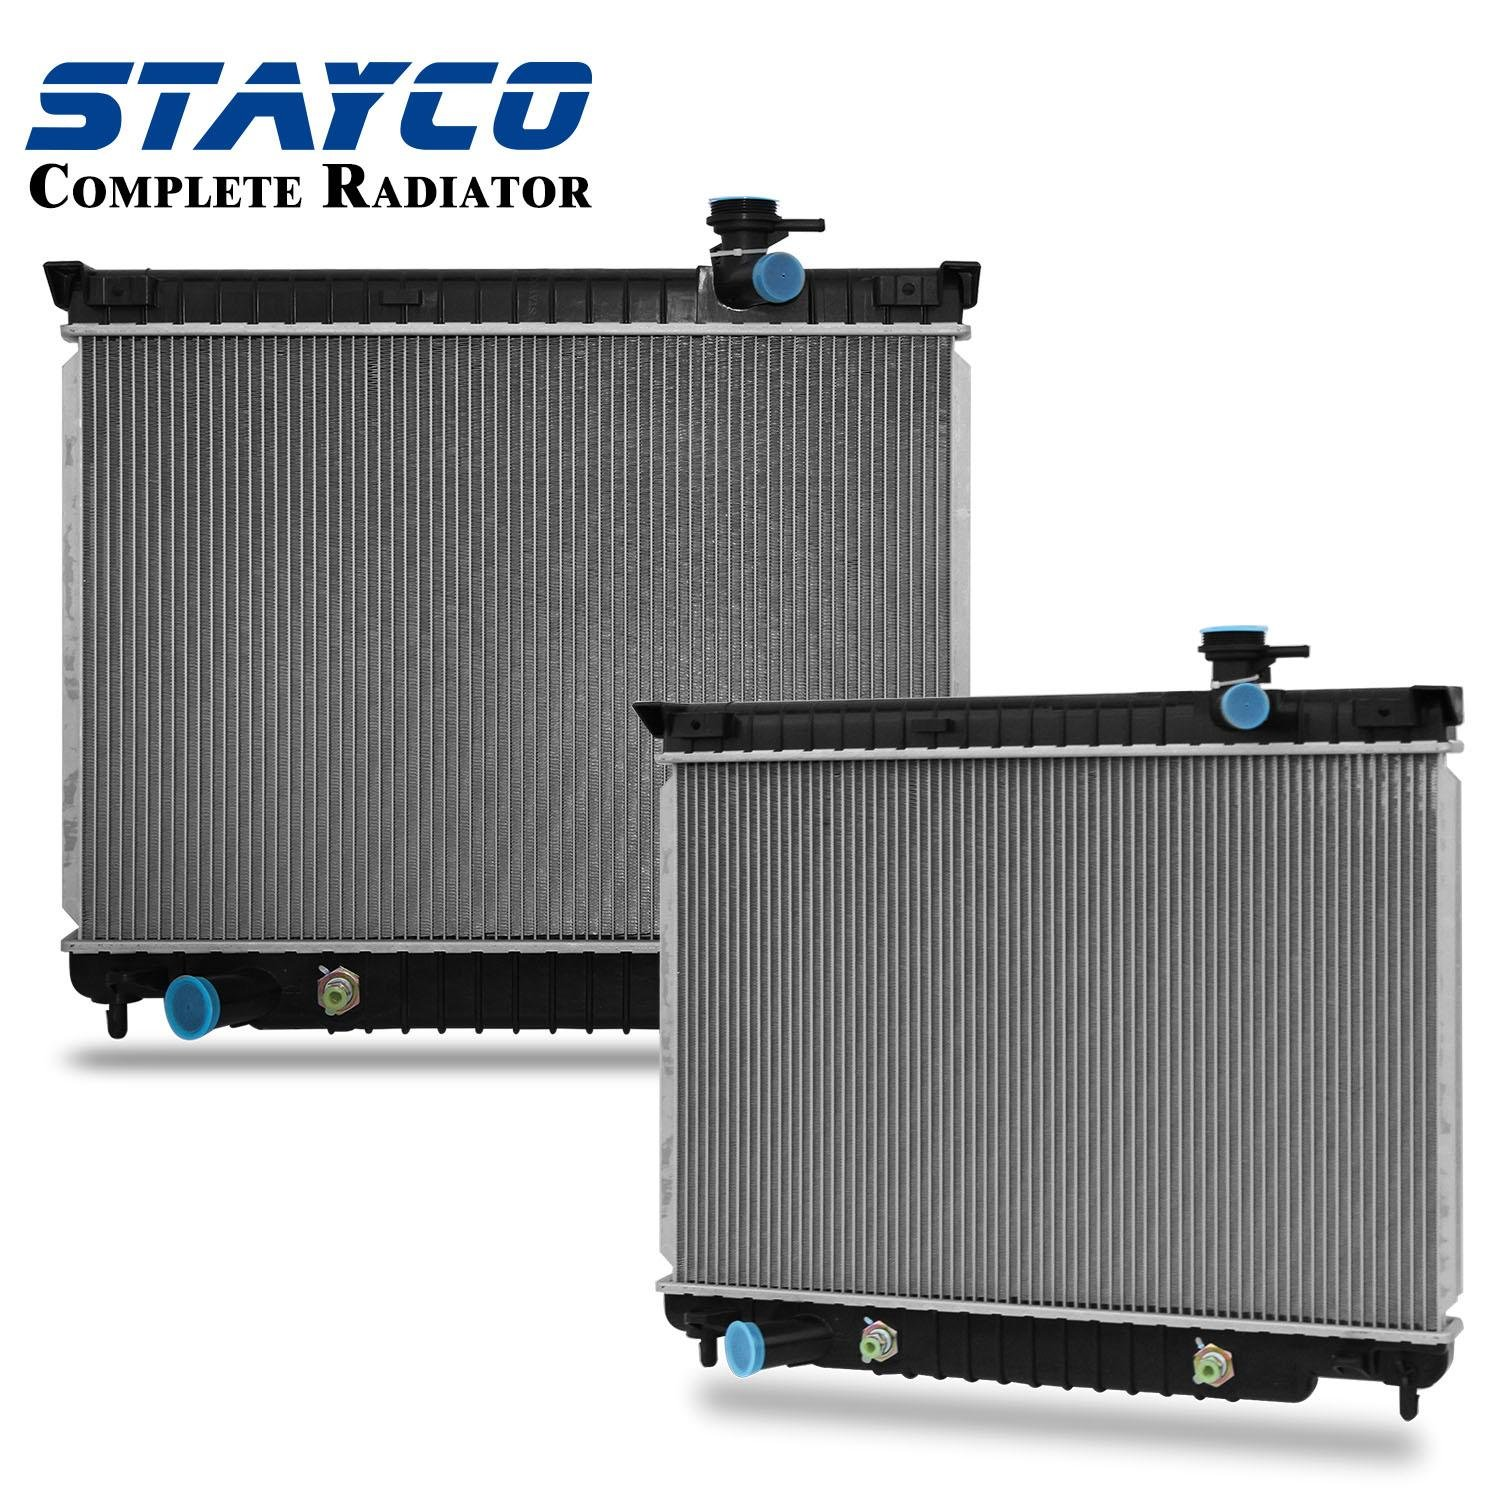 CU2458 Radiator Replacement for Chevrolet Trailblazer 2002 2003 2004 2005 2006 2007 2008 2009 4.2L L6 STAYCO